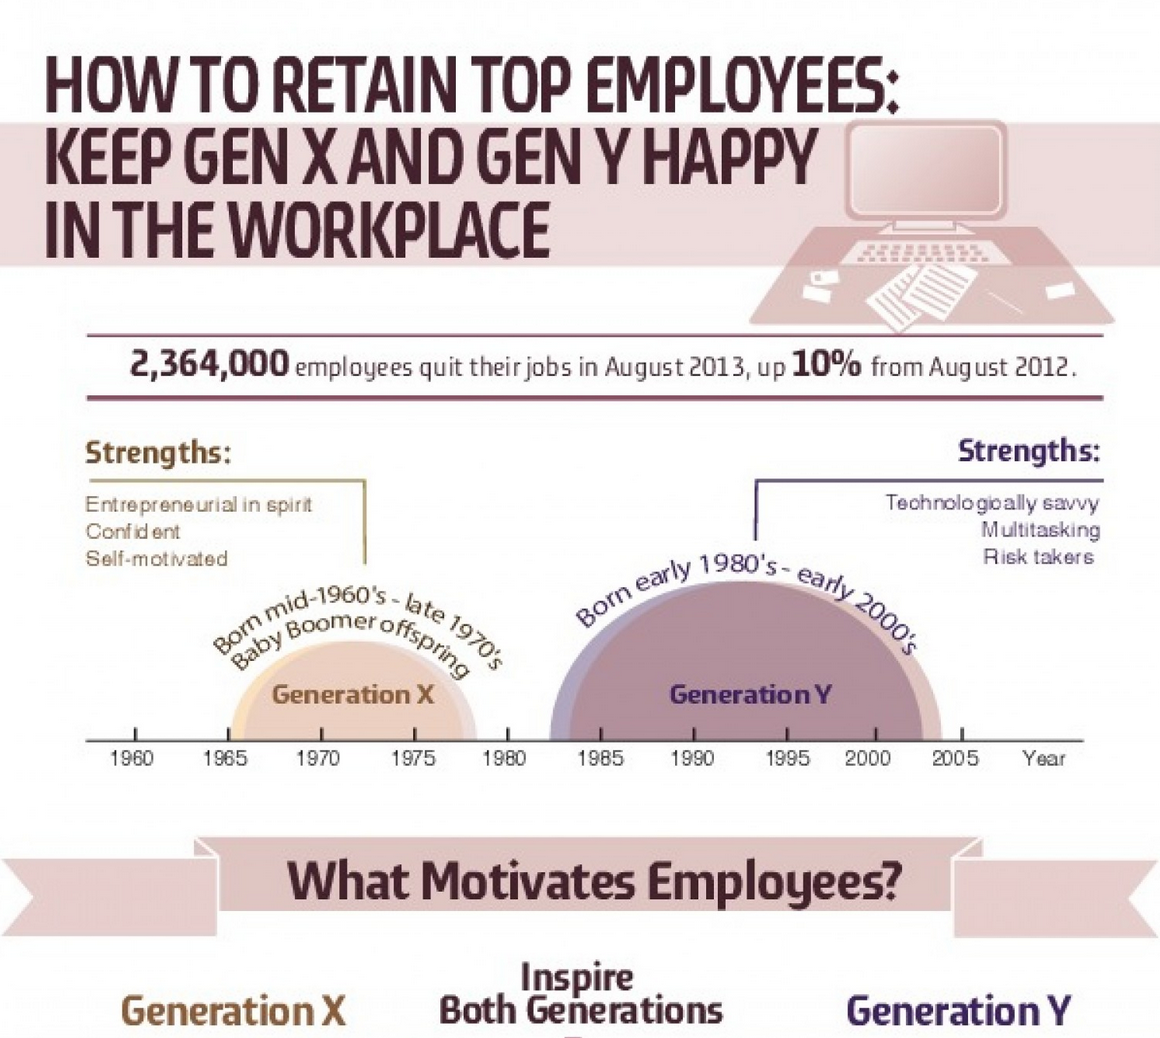 How To Retain Top Employees